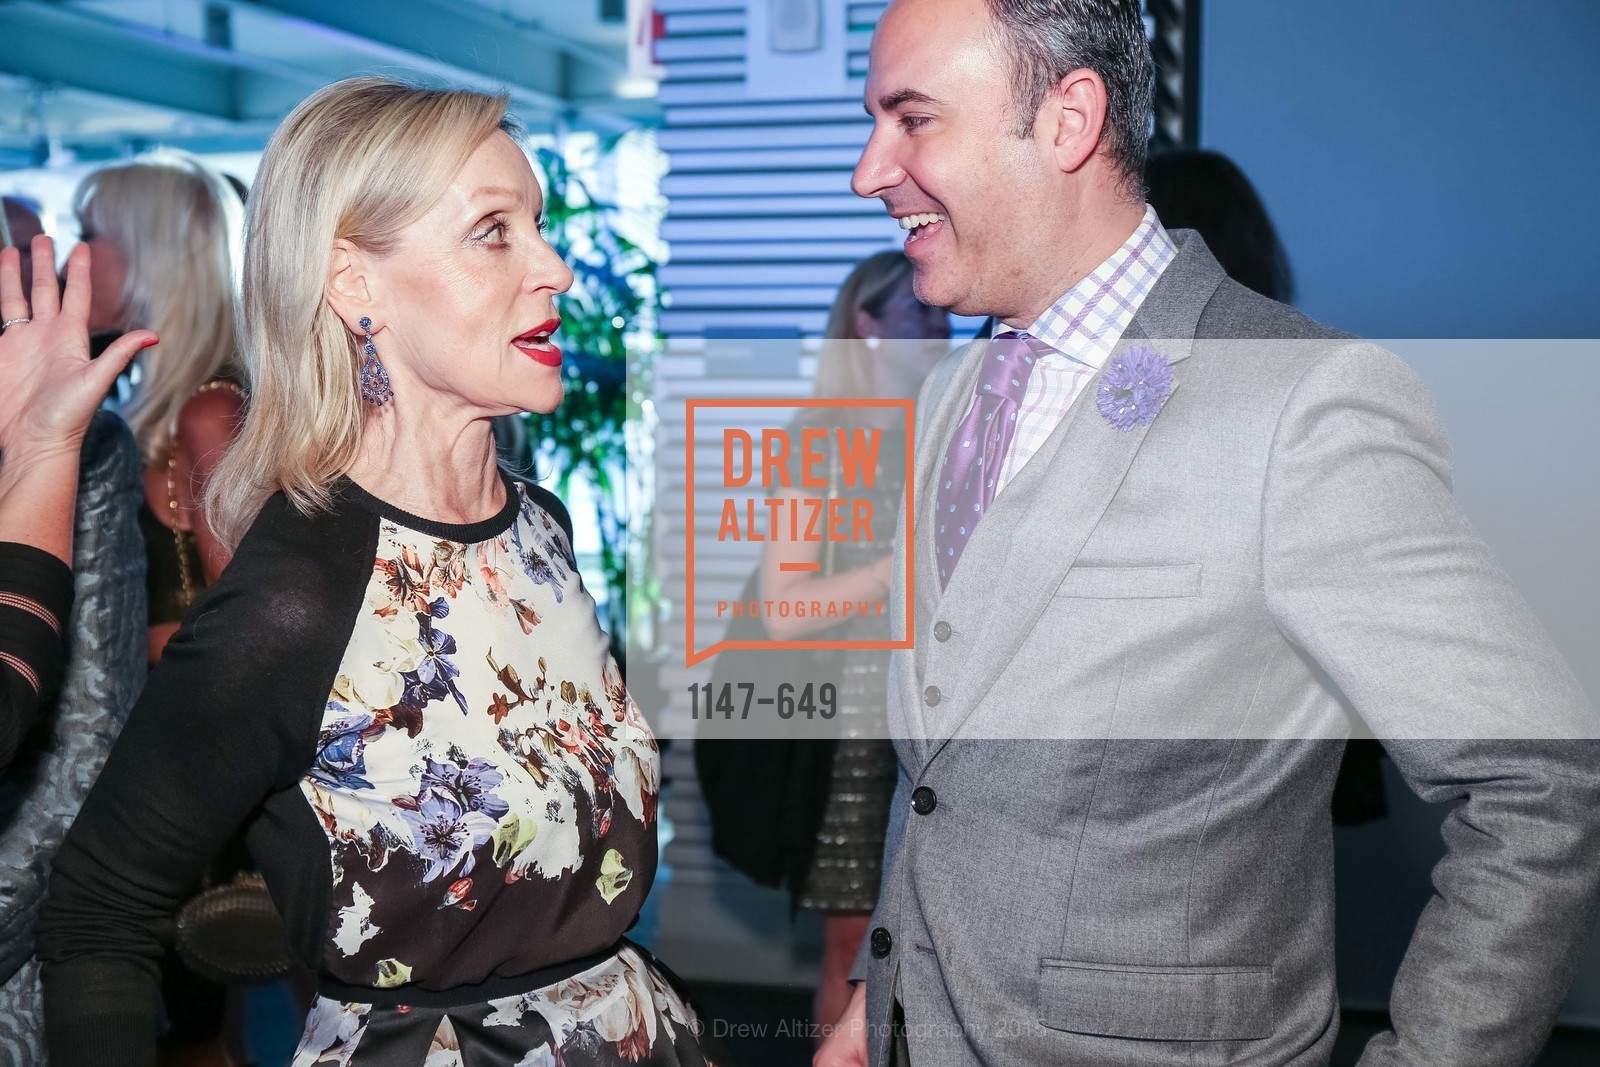 Barbara Brown, Robert Arnold-Kraft, Fashion Forward: An Evening with Erdem presented by SF Opera Guild and Saks Fifth Avenue, Pier 27. Pier 27, The Embarcadero, March 25th, 2015,Drew Altizer, Drew Altizer Photography, full-service agency, private events, San Francisco photographer, photographer california